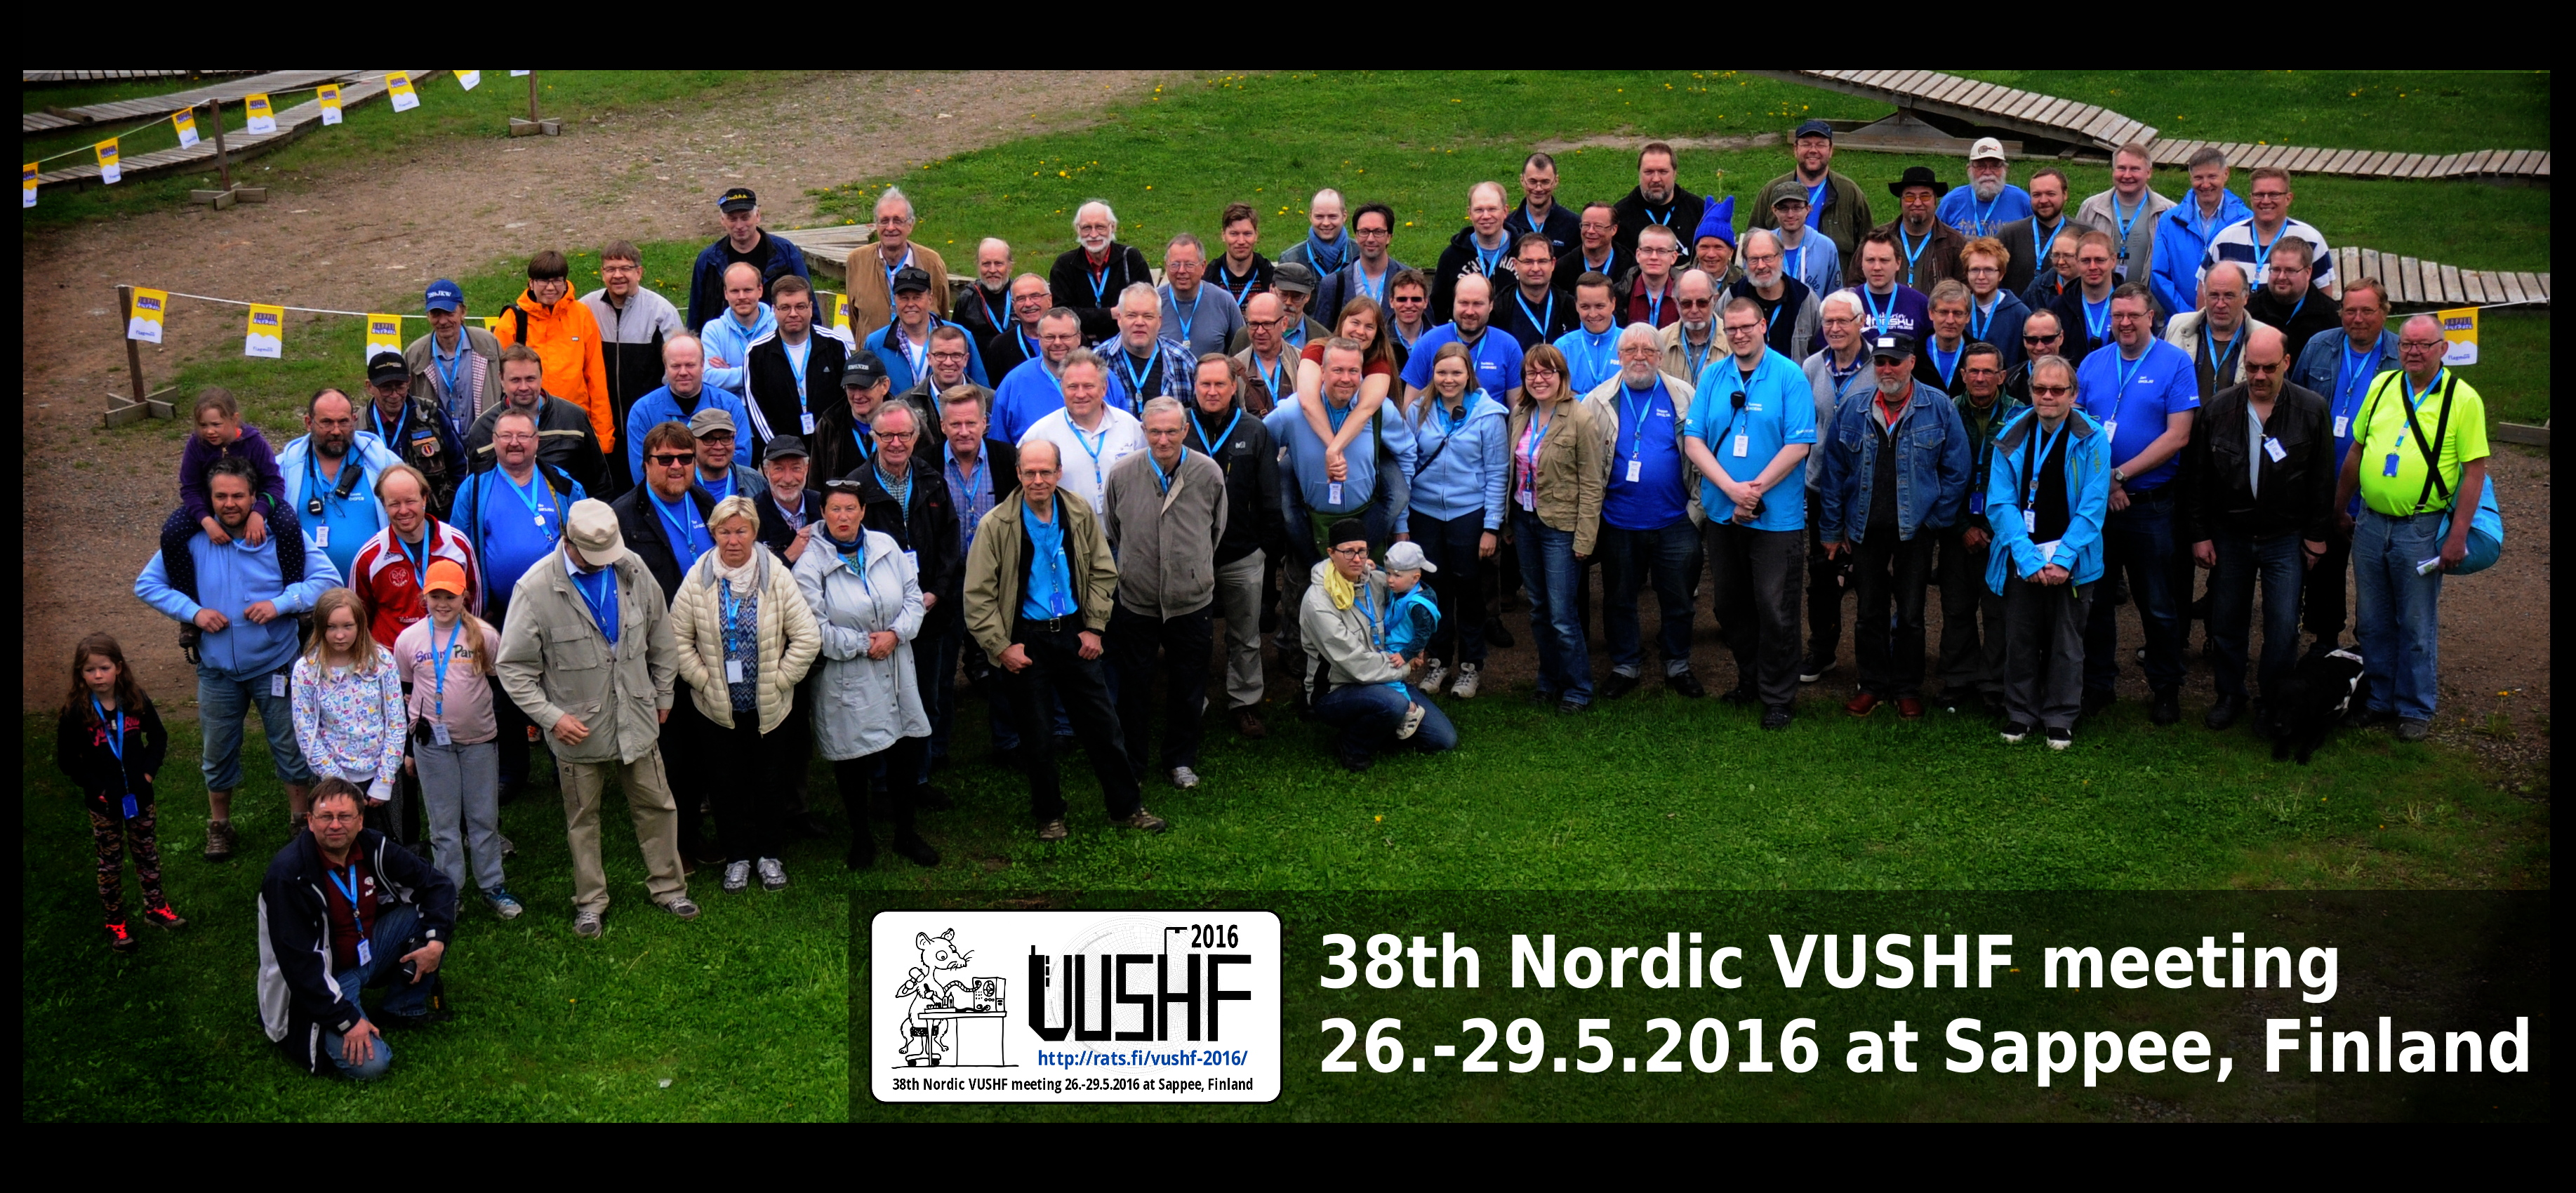 VUSHF2016-group-photo-fullsize